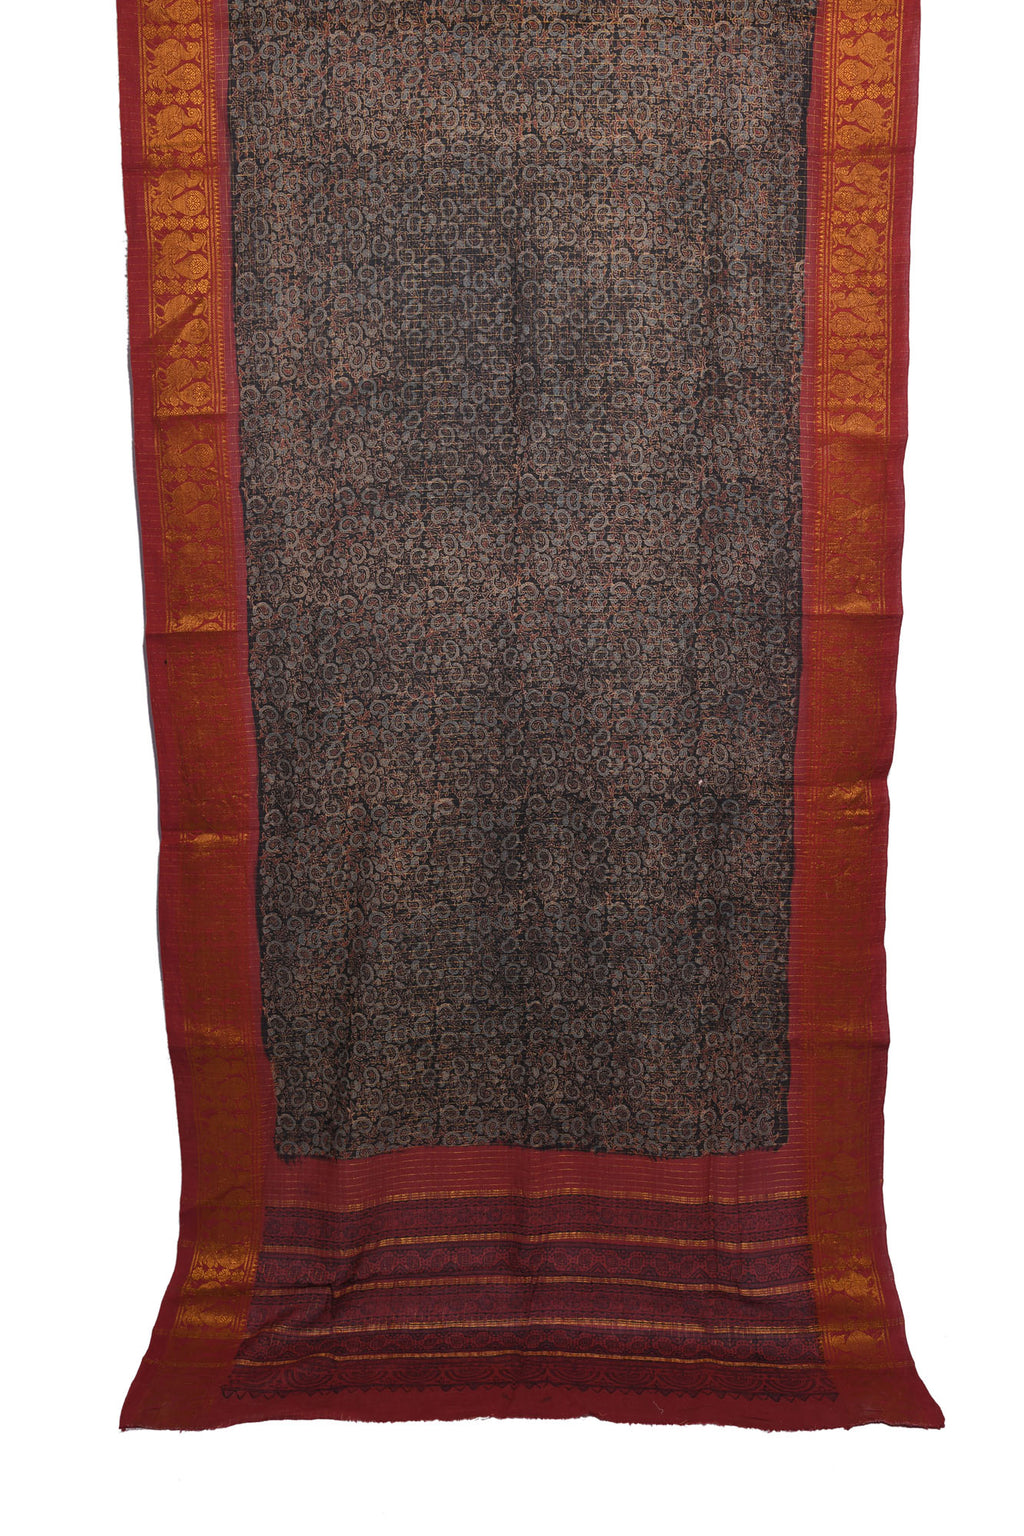 Ajrakh printed cotton saree with saree border